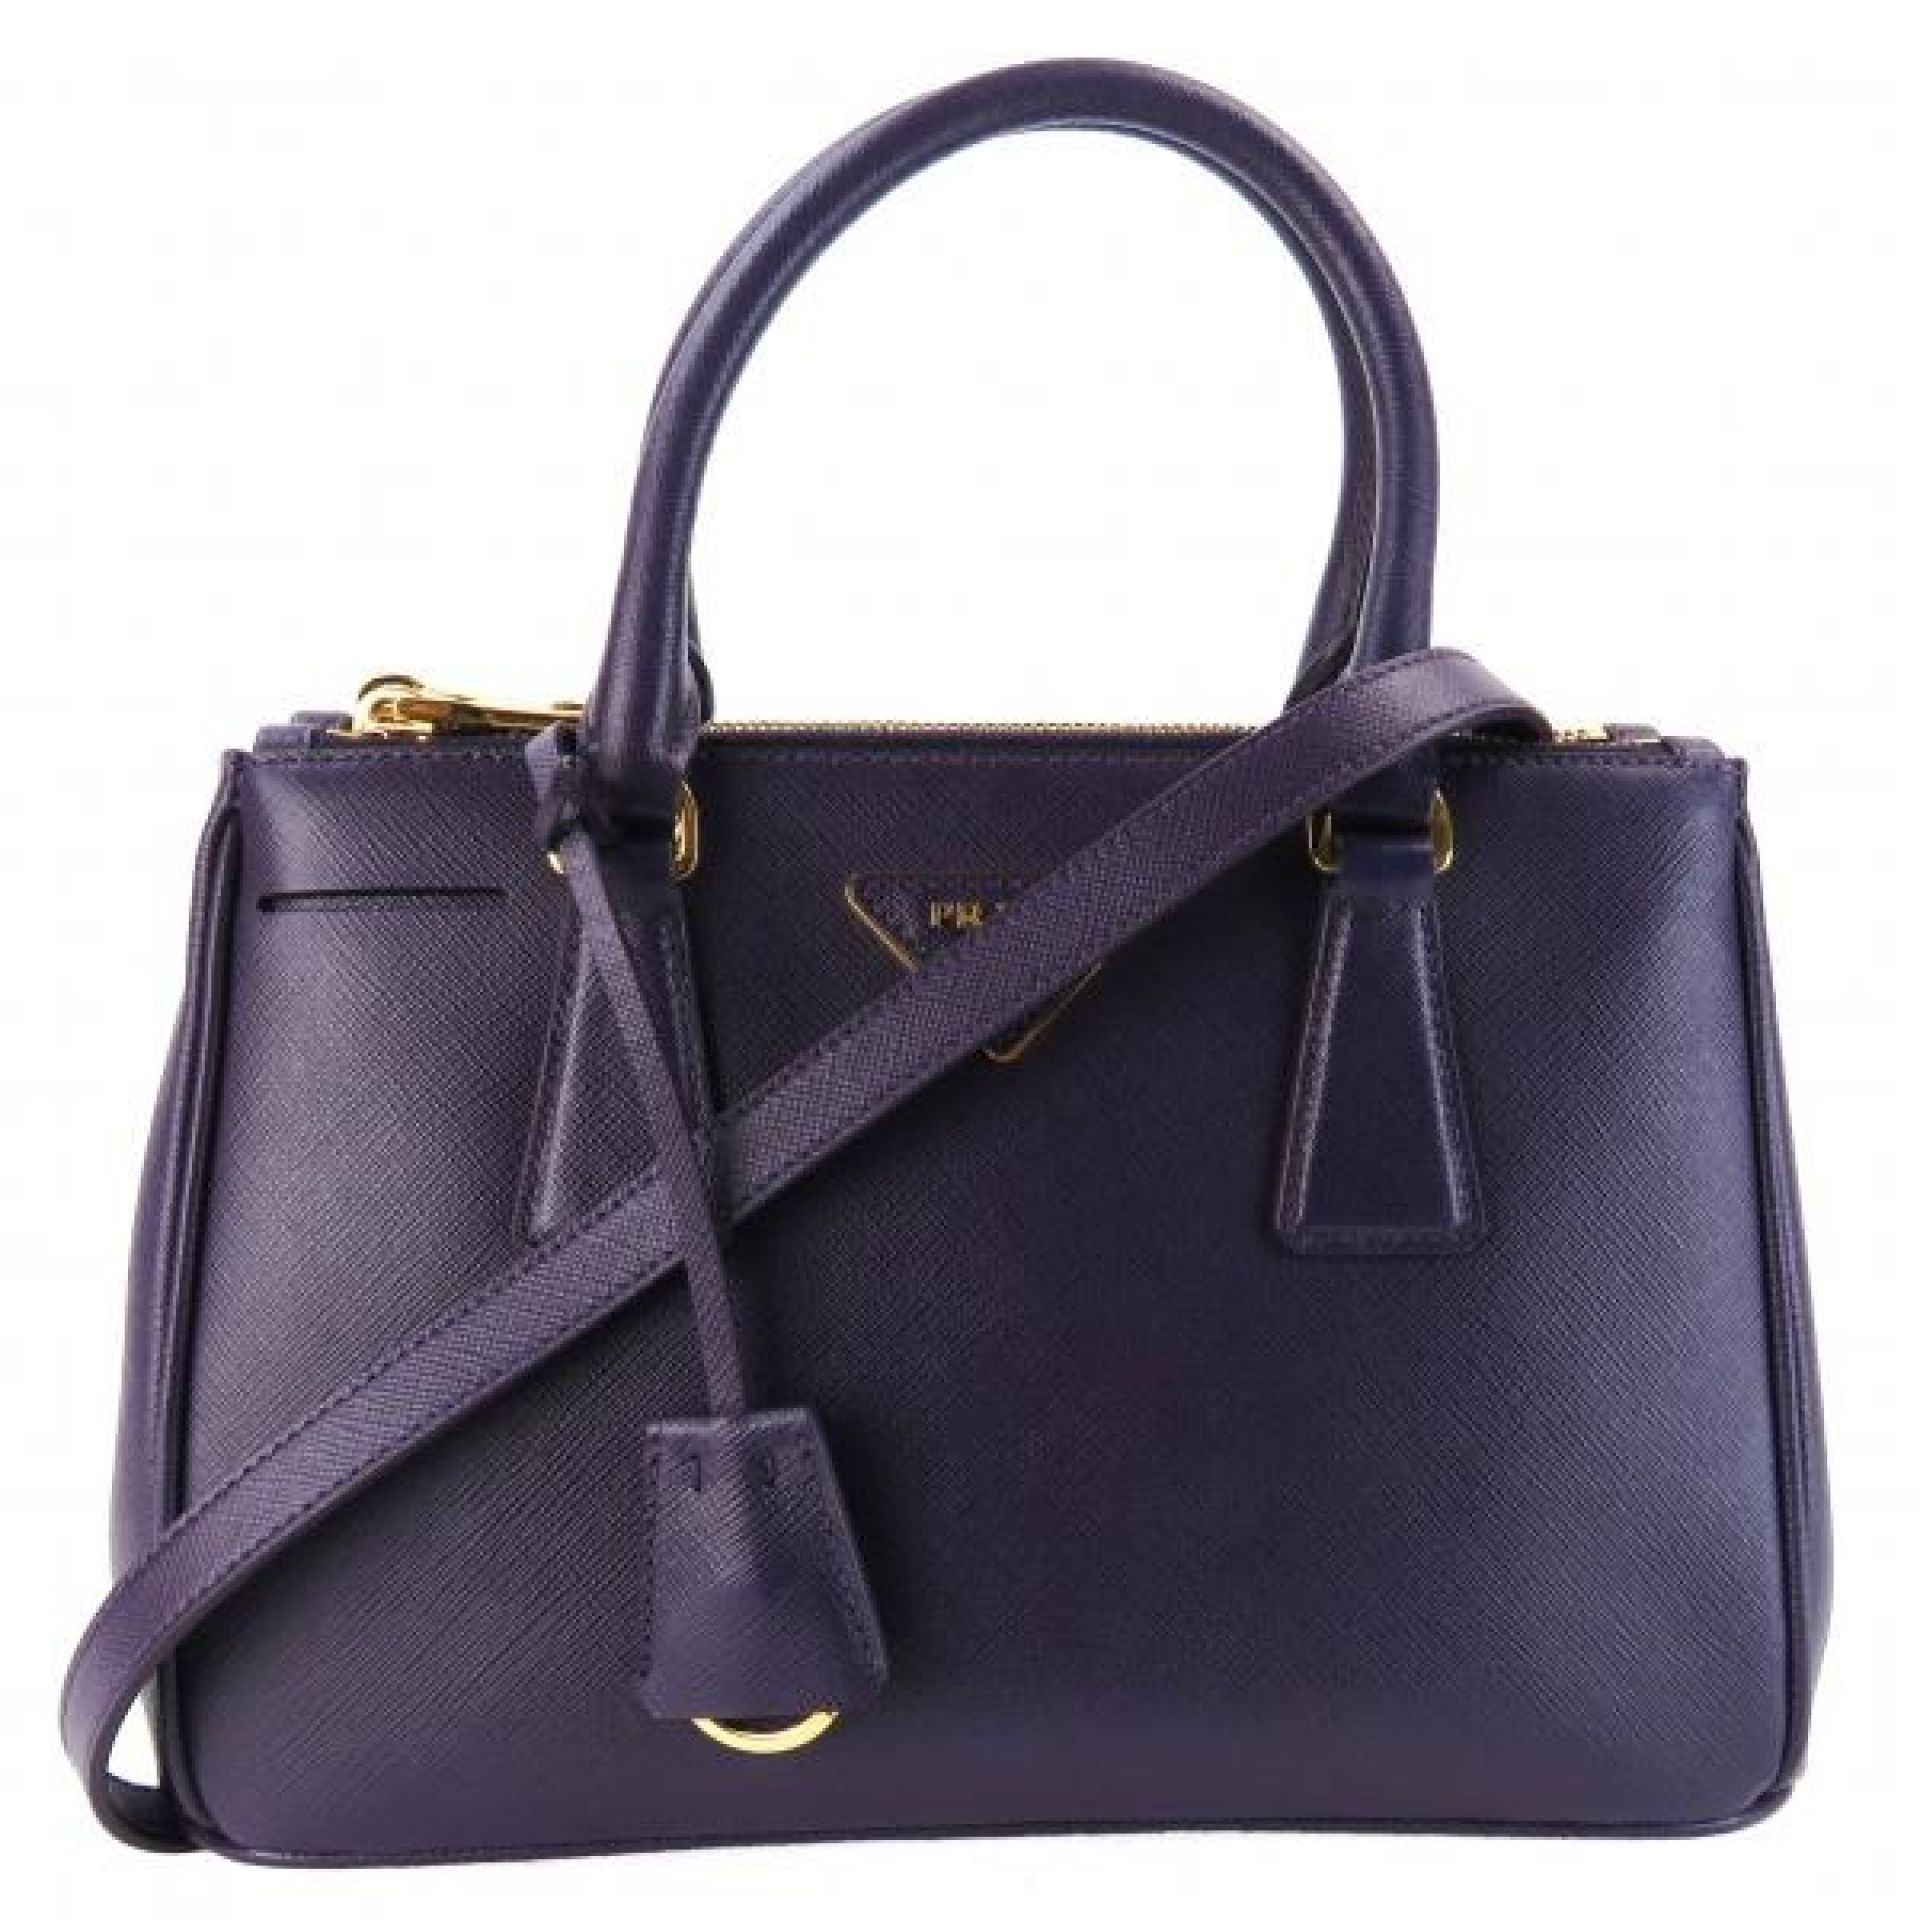 Prada Purple Saffiano Leather Small Double Zip Executive Tote Bag with Shoulder